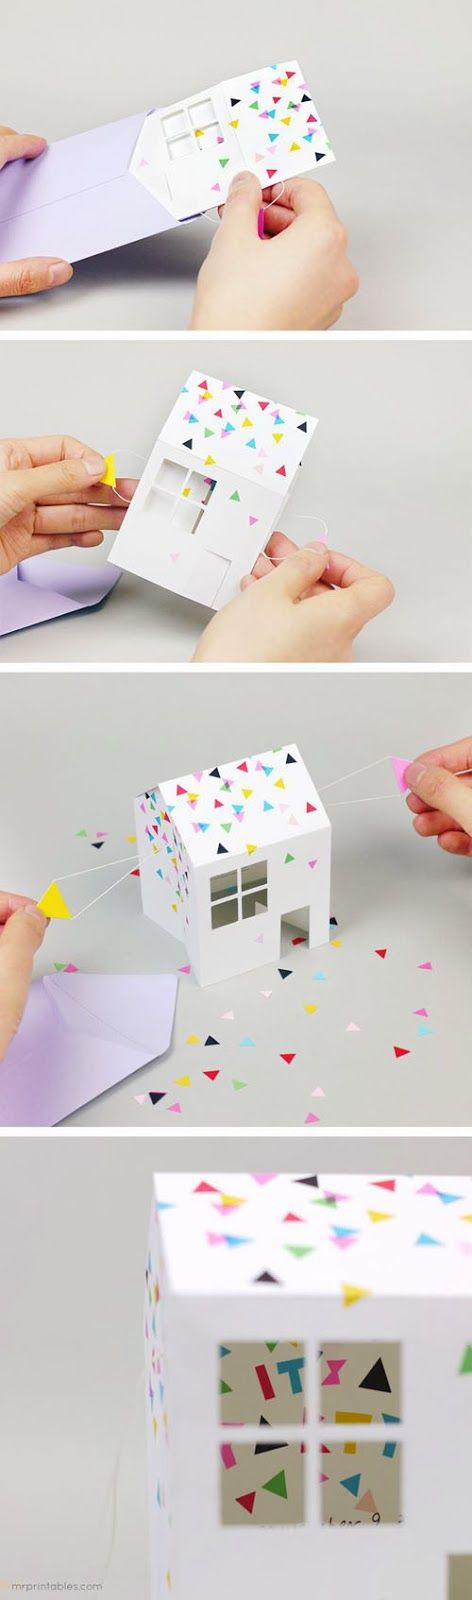 The 205 Best Pop Up Cards Images On Pinterest 3d Cards Papercraft